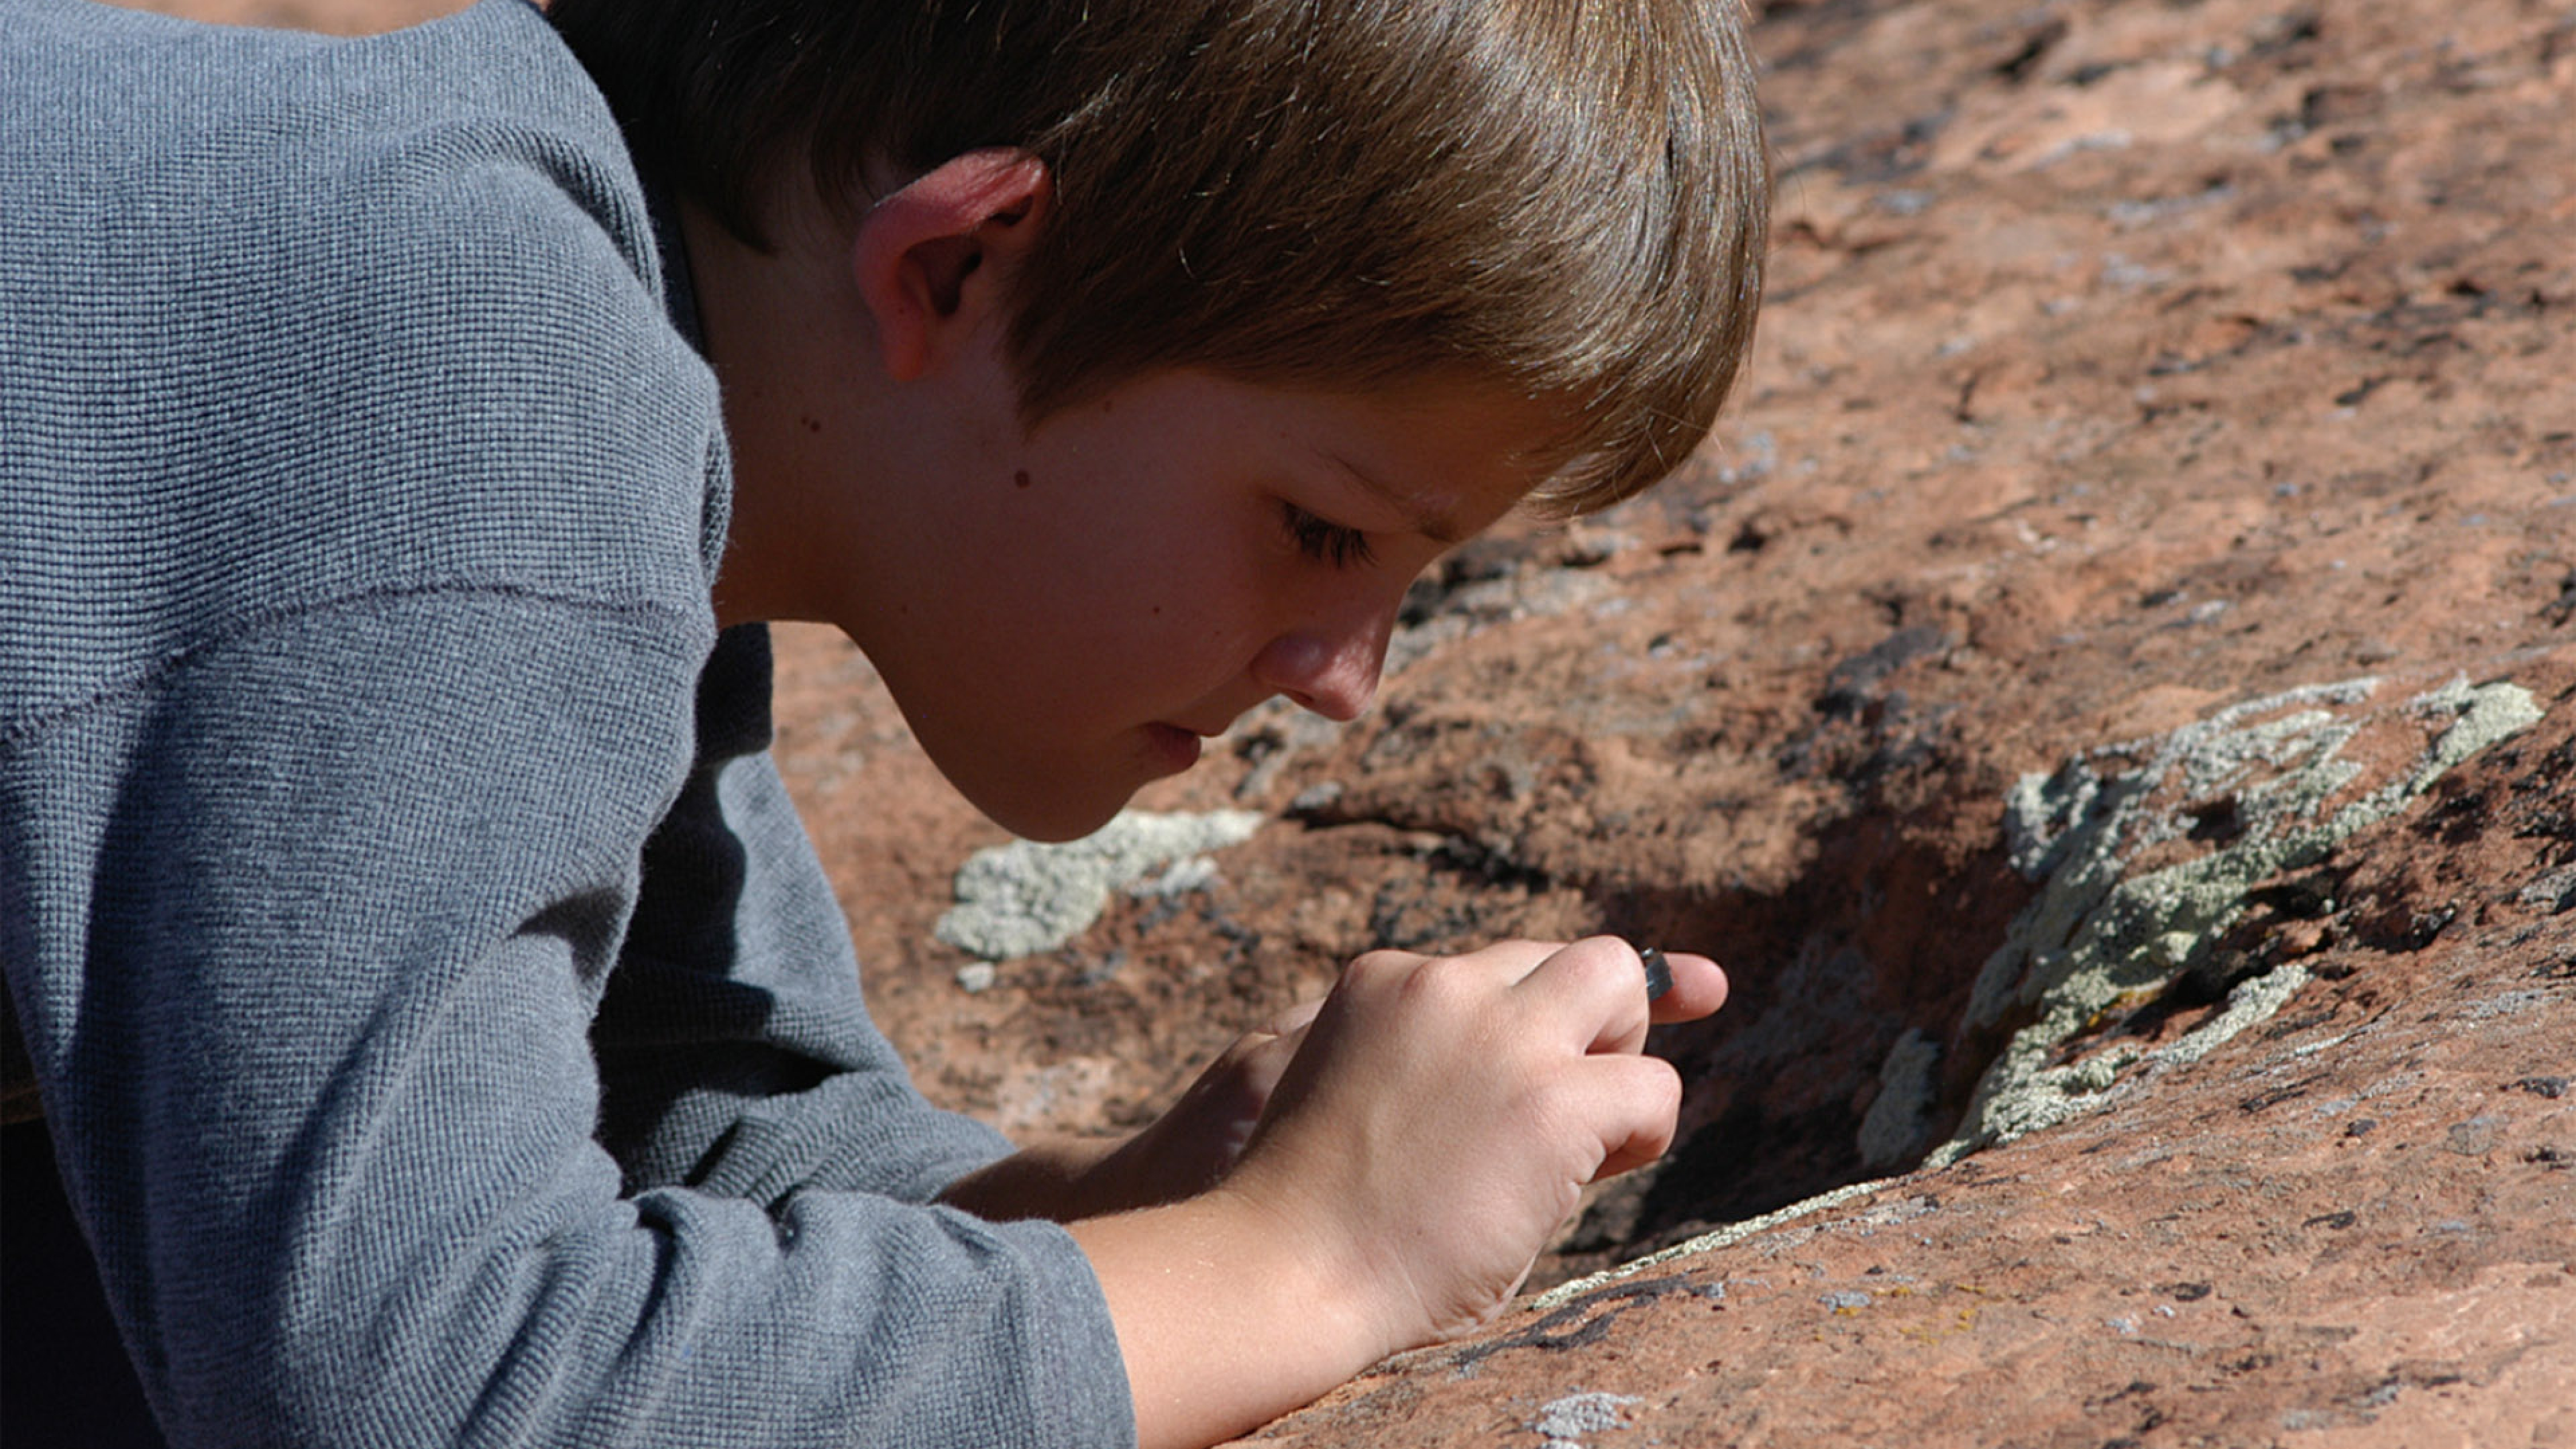 Boy studying lichens in Arches National Park